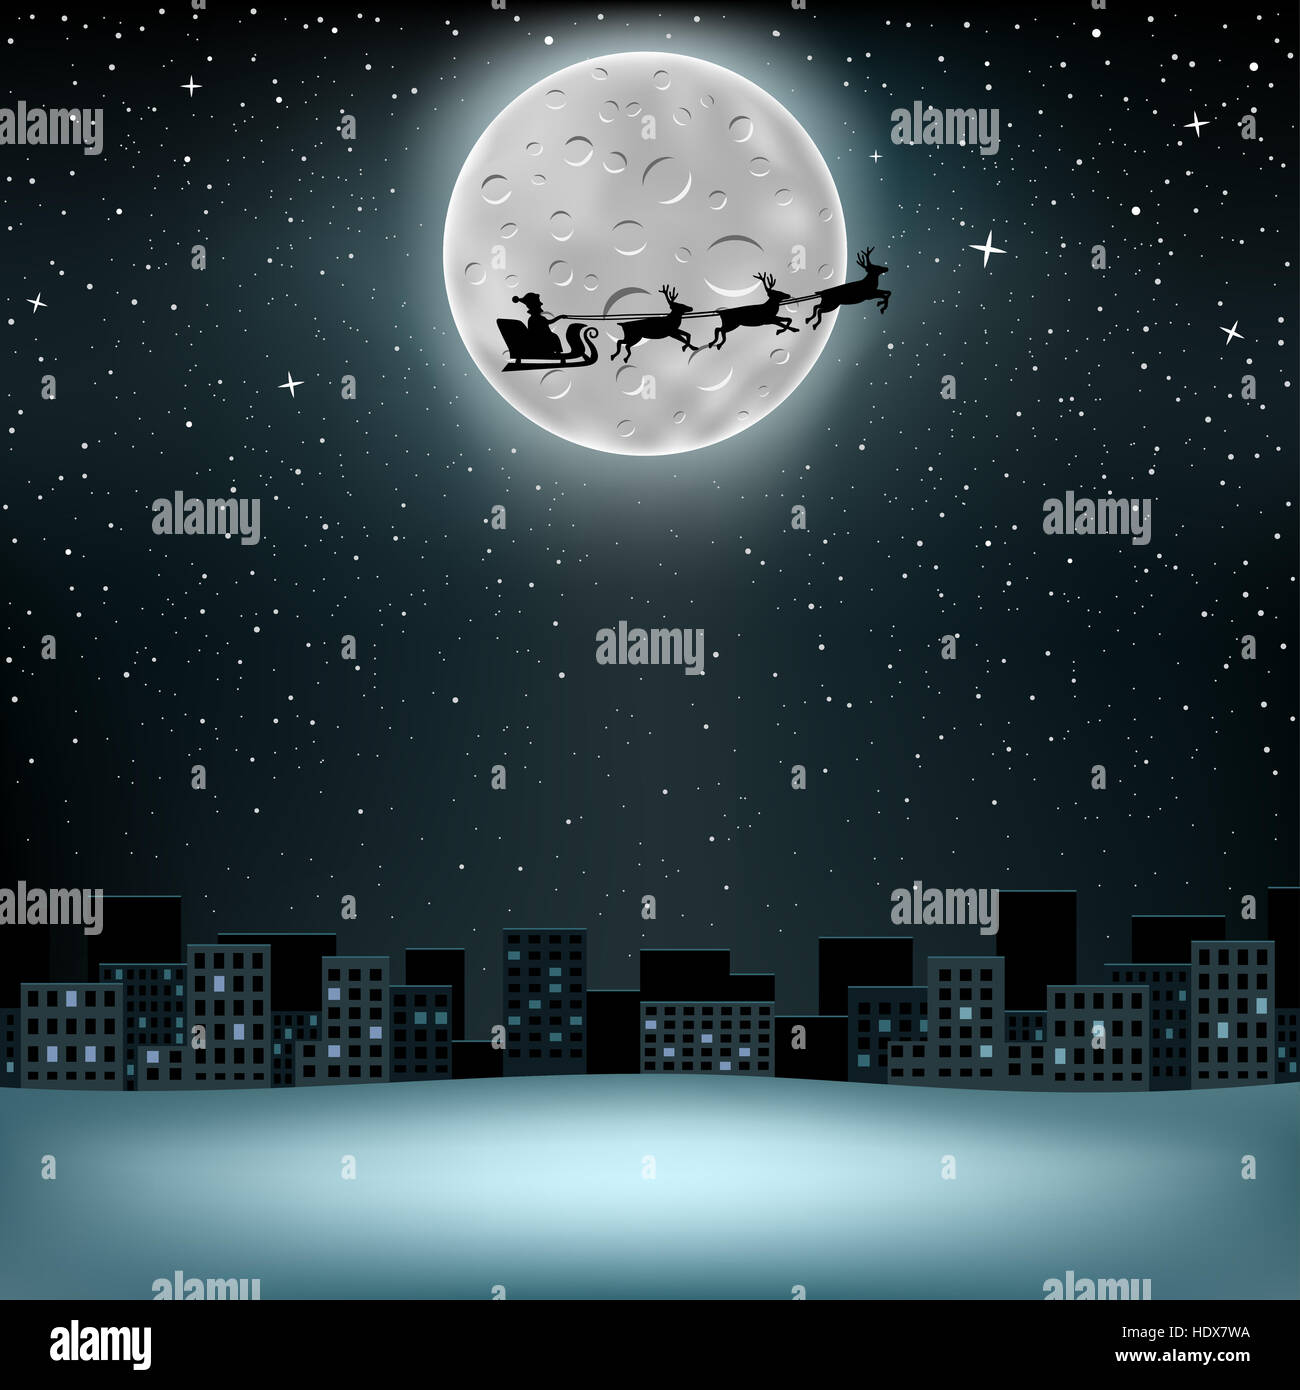 The flying Santa Claus with reindeer, large moon with craters on stars background over night city - Stock Image